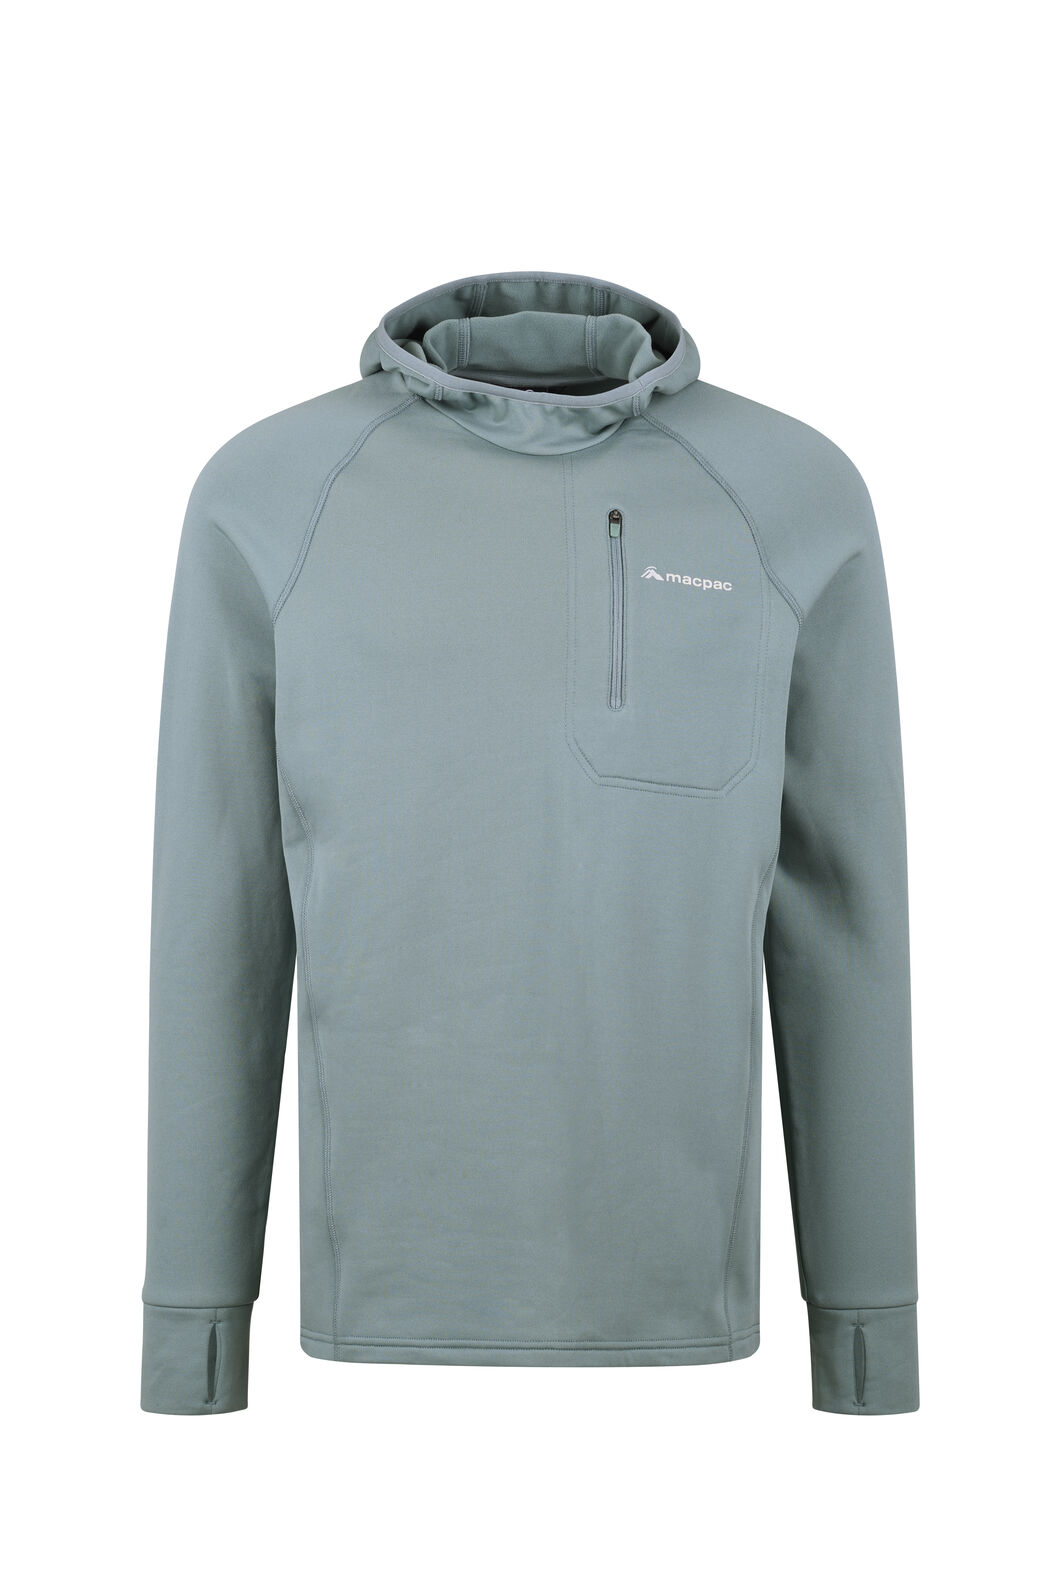 Macpac Traction Pontetorto® Pullover Hoody - Men's, Stormy Sea, hi-res